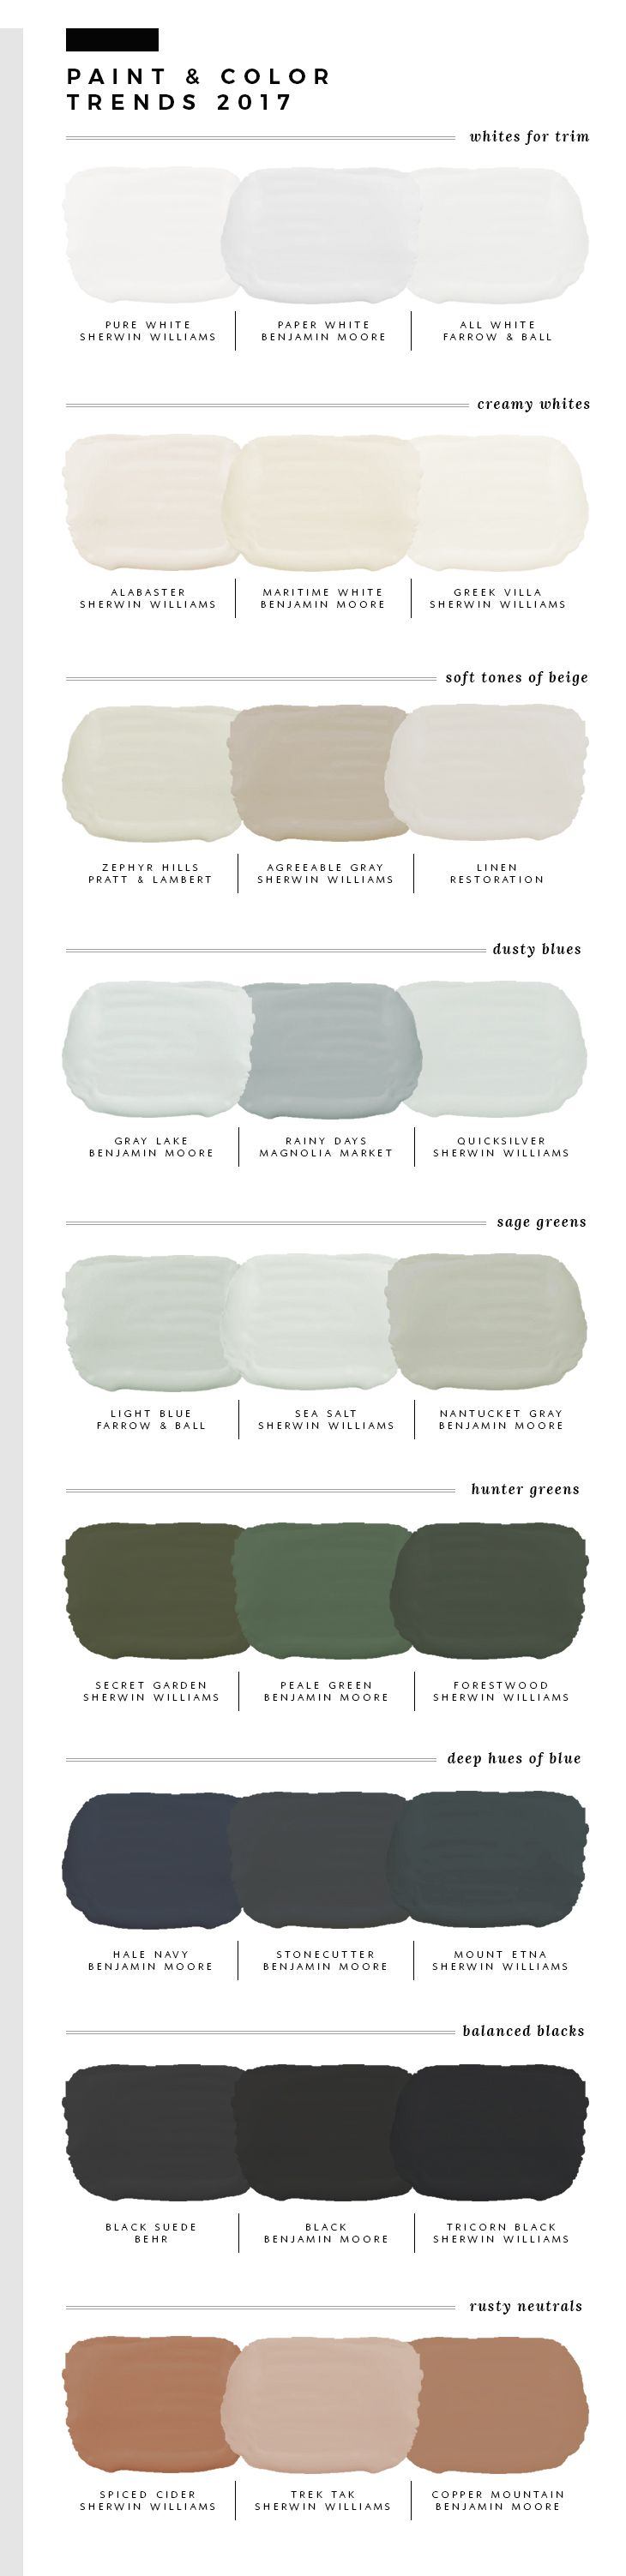 predicted paint colors for 2017 | decorating tips | pinterest